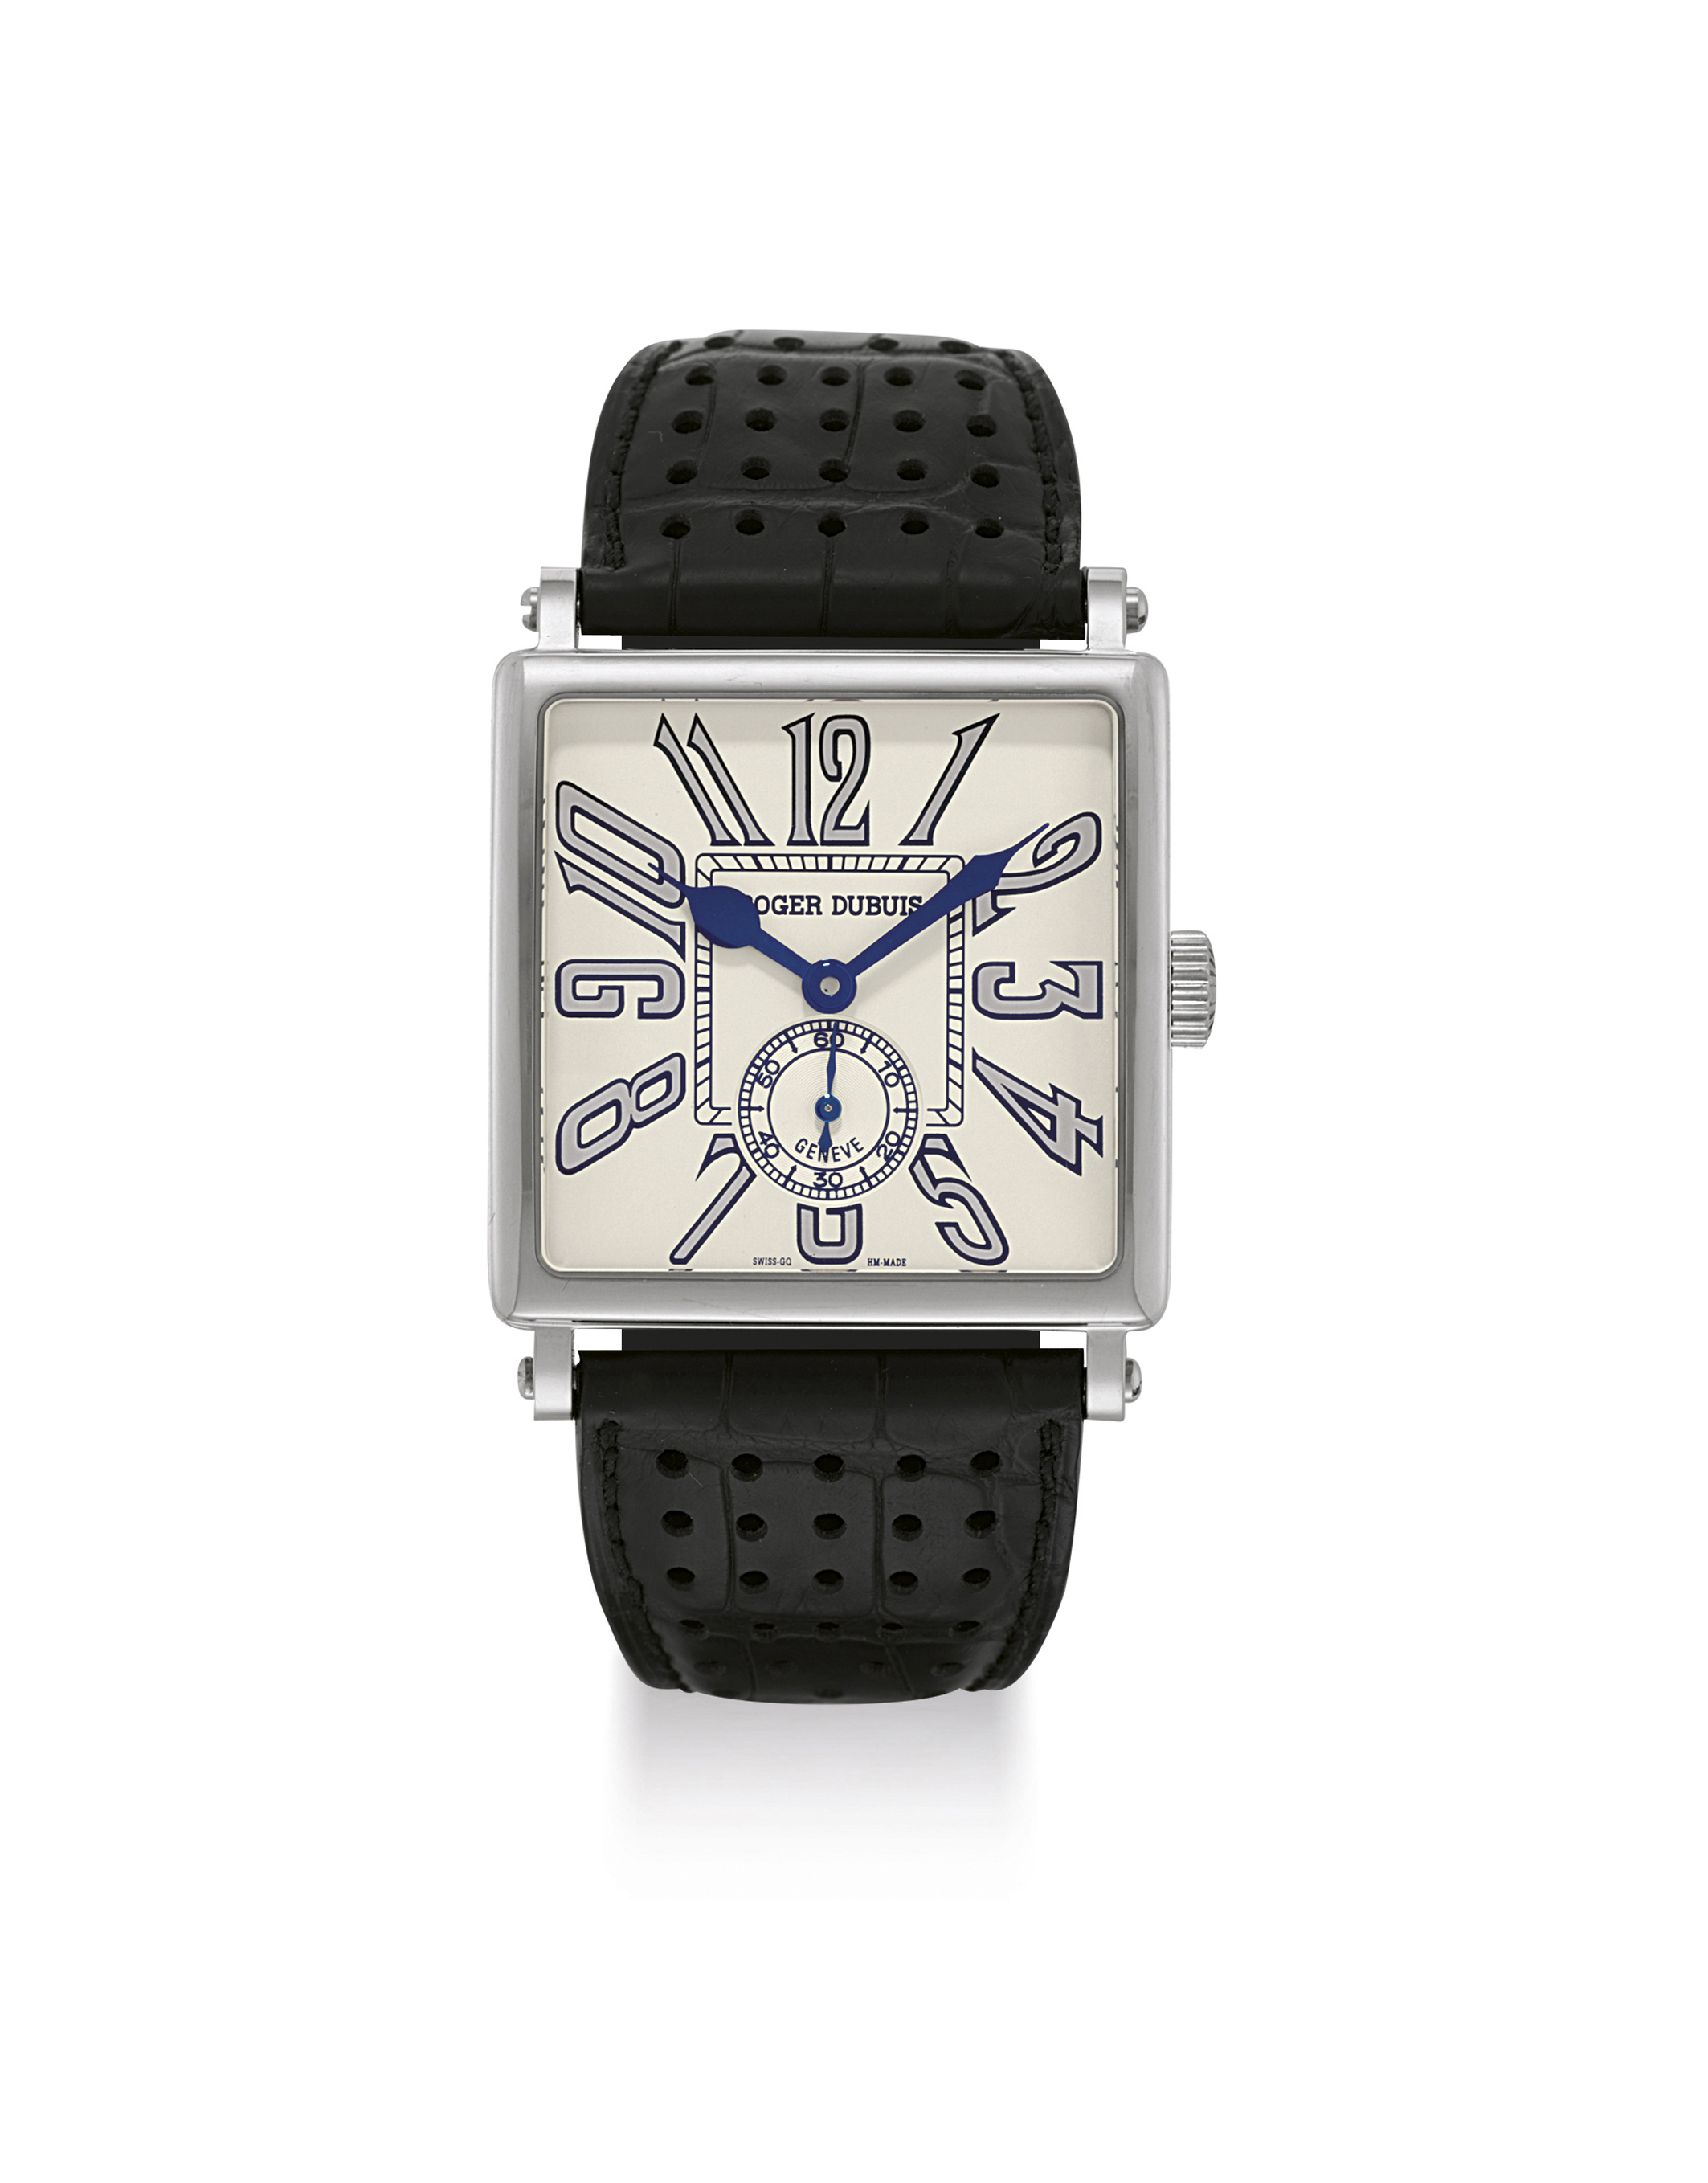 ROGER DUBUIS. AN OVERSIZED 18K WHITE GOLD LIMITED EDITION AUTOMATIC WRISTWATCH